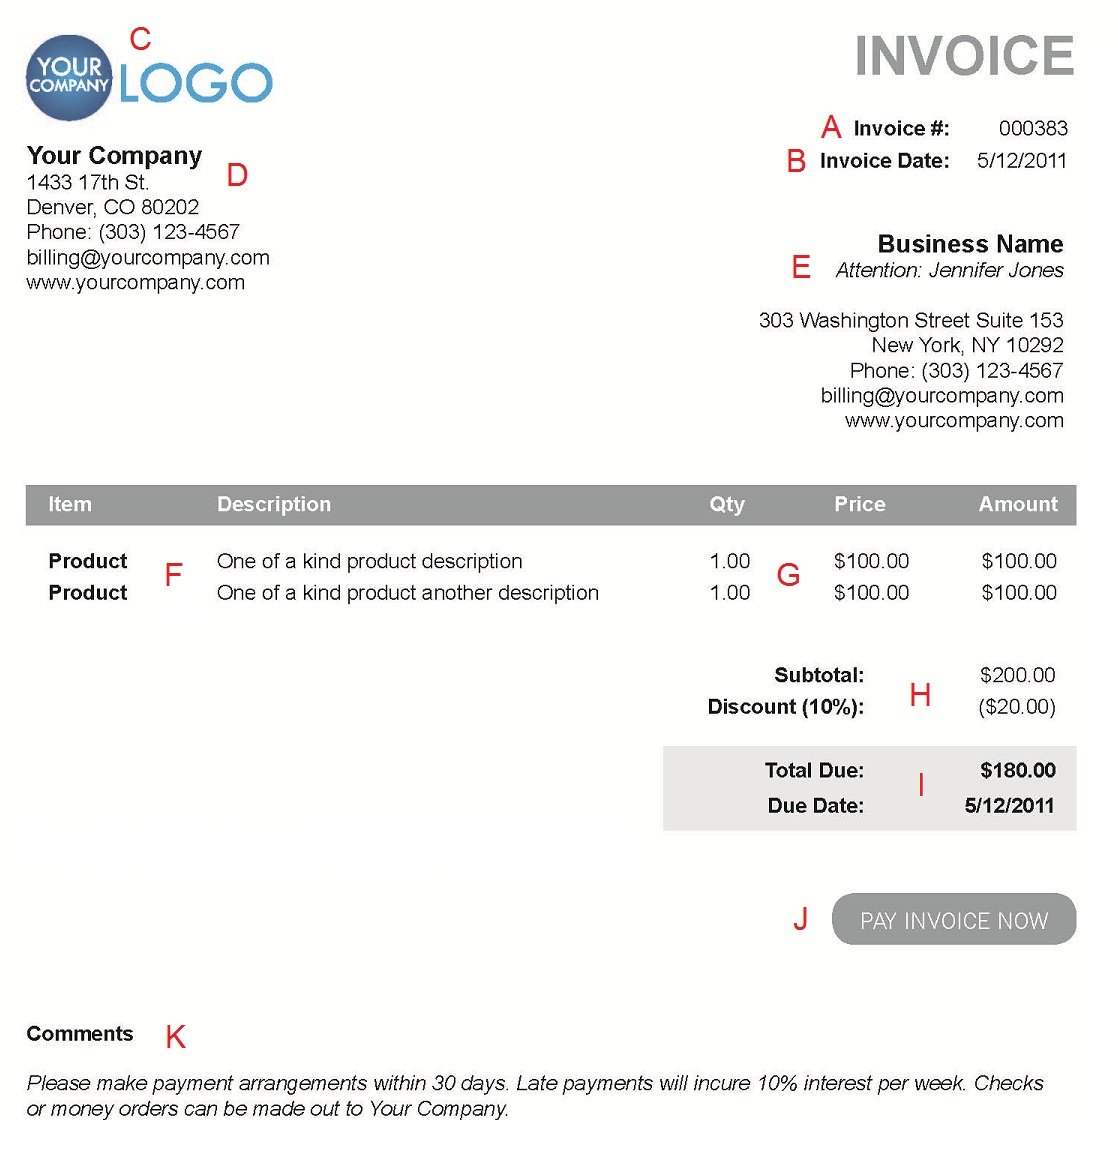 Bringjacobolivierhomeus  Marvellous The  Different Sections Of An Electronic Payment Invoice With Excellent A  With Cute Invoice Types Also Pay Invoice Online In Addition Printable Commercial Invoice And Makeup Artist Invoice Template As Well As What Invoice Means Additionally Ms Word Custom Invoice Template From Paysimplecom With Bringjacobolivierhomeus  Excellent The  Different Sections Of An Electronic Payment Invoice With Cute A  And Marvellous Invoice Types Also Pay Invoice Online In Addition Printable Commercial Invoice From Paysimplecom